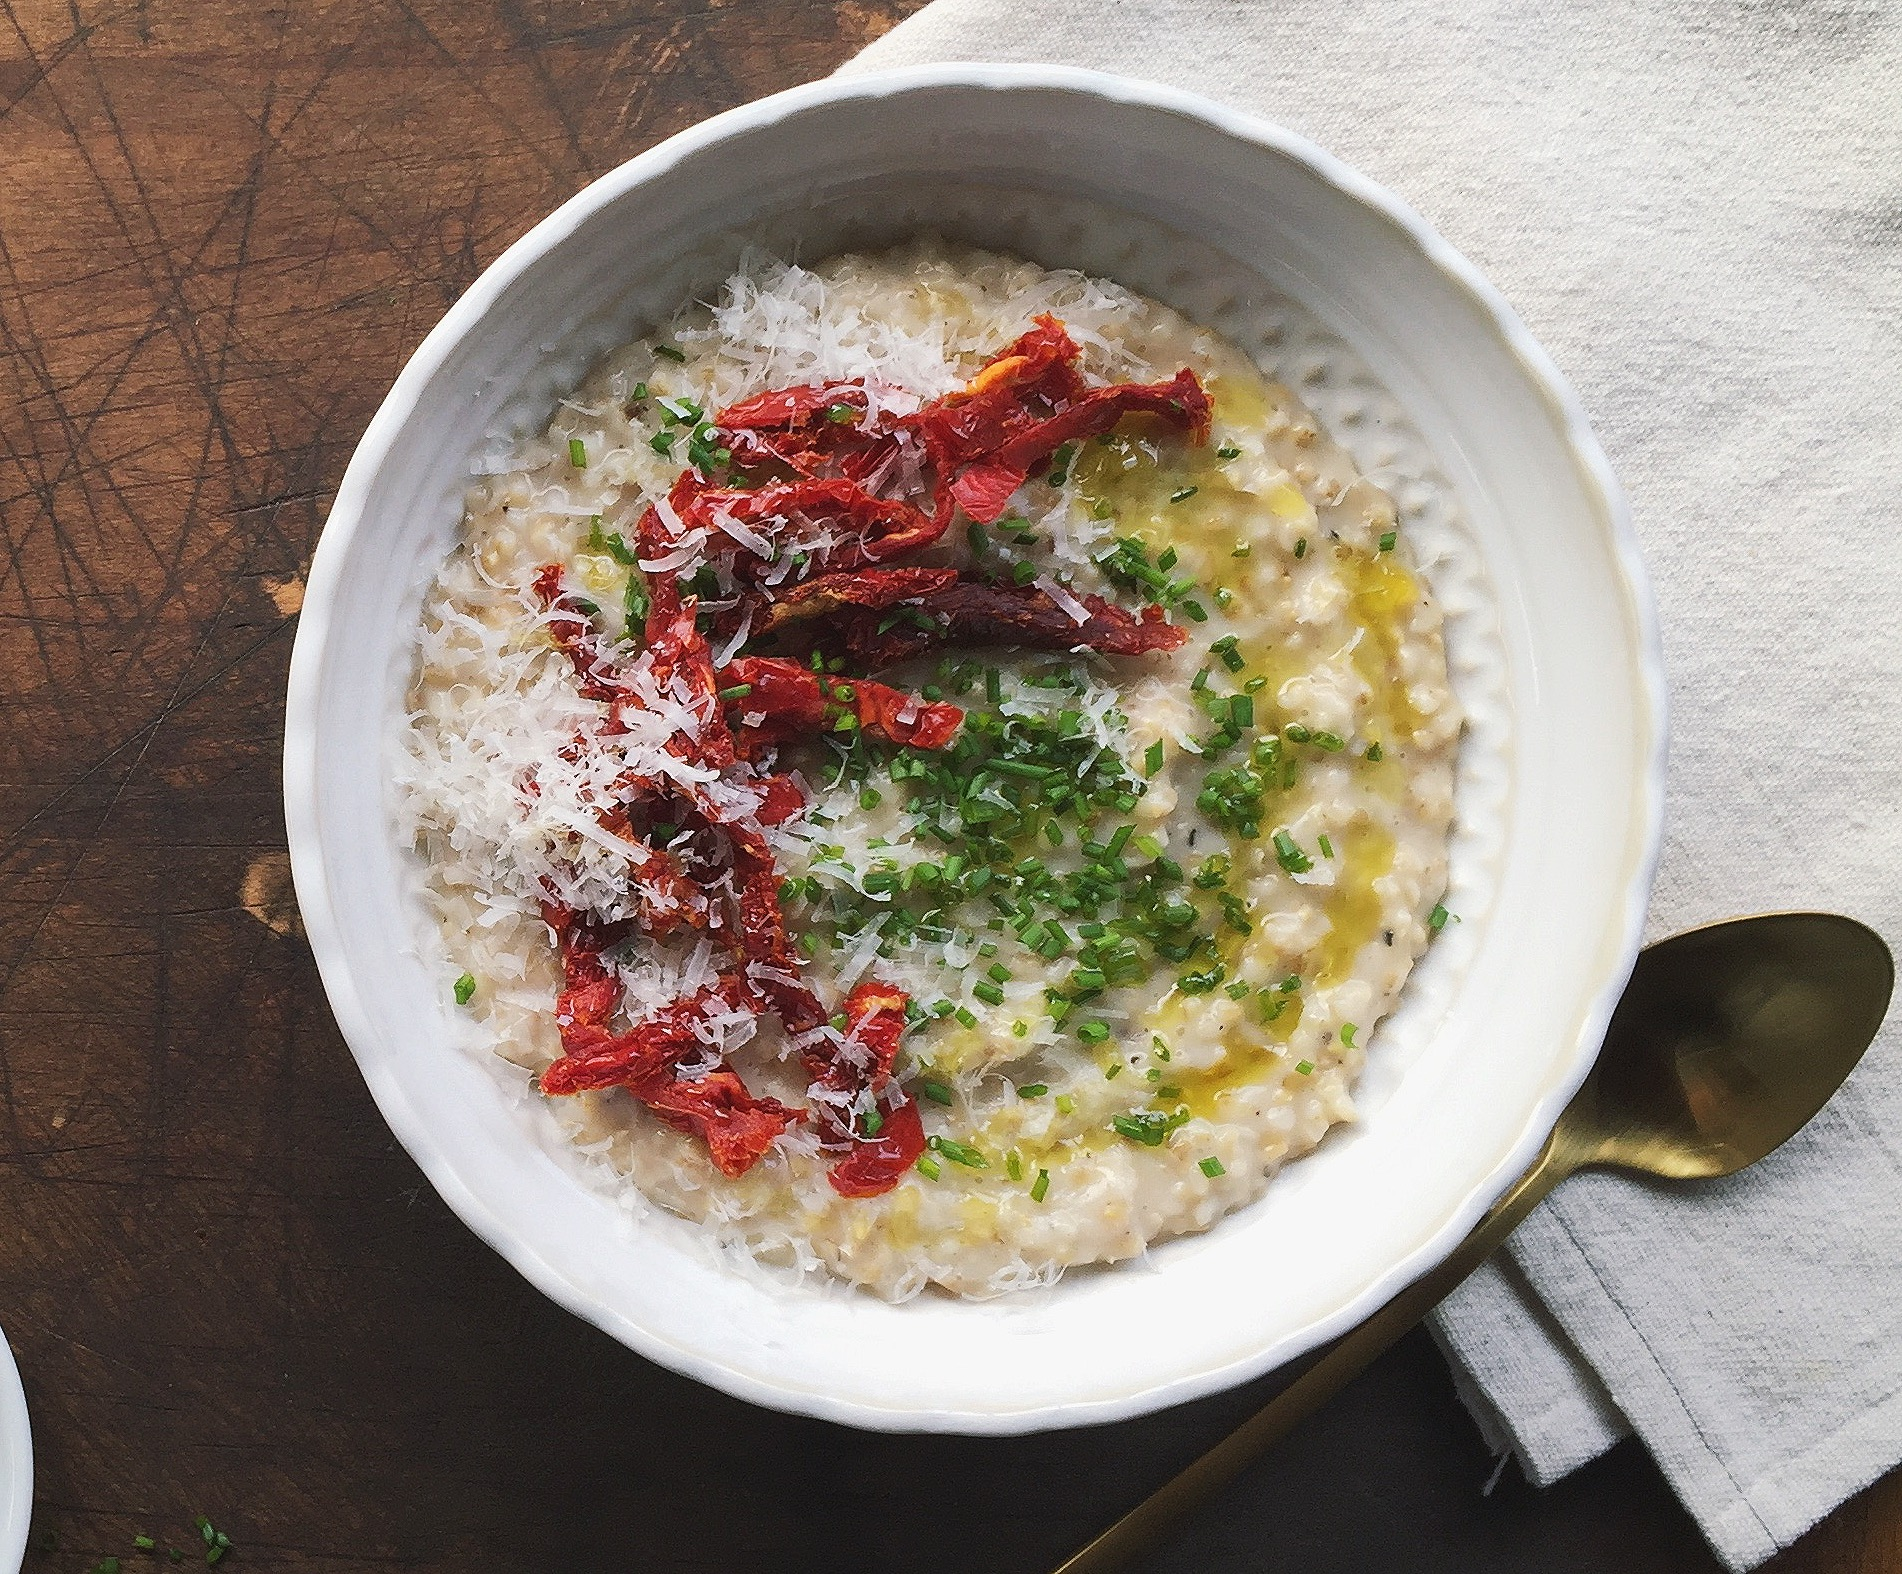 Savory Parmesan Oatmeal | All Purpose Flour Child